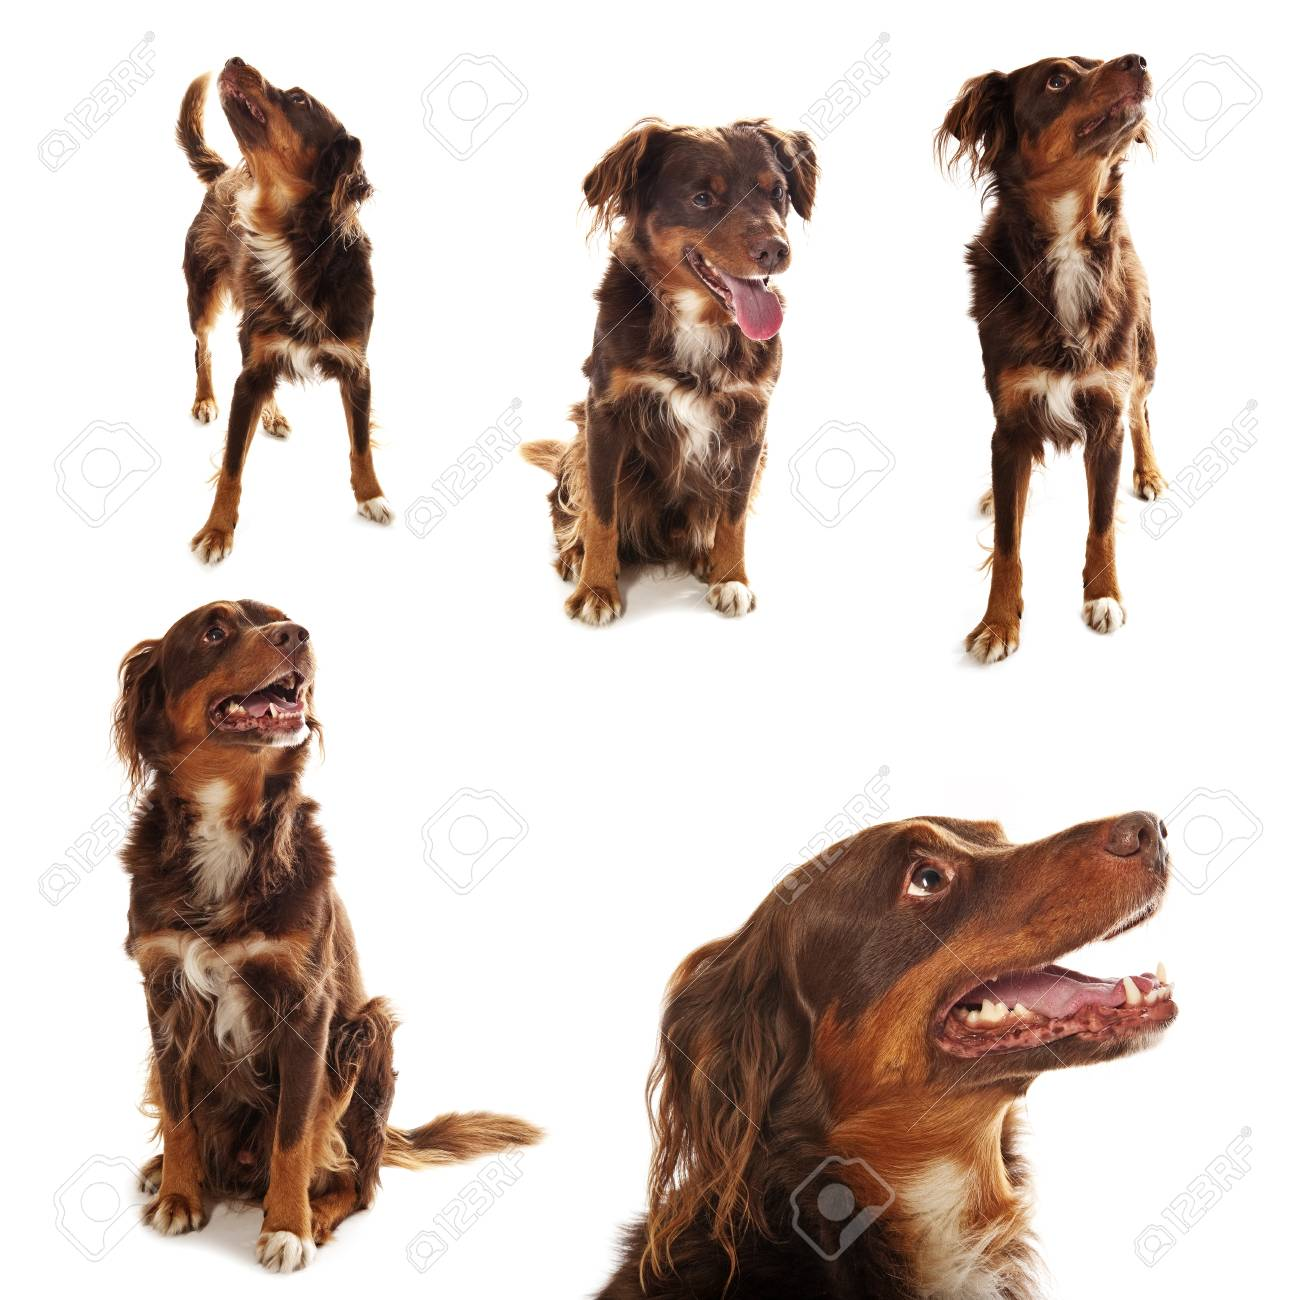 dog collection Stock Photo - 17457126